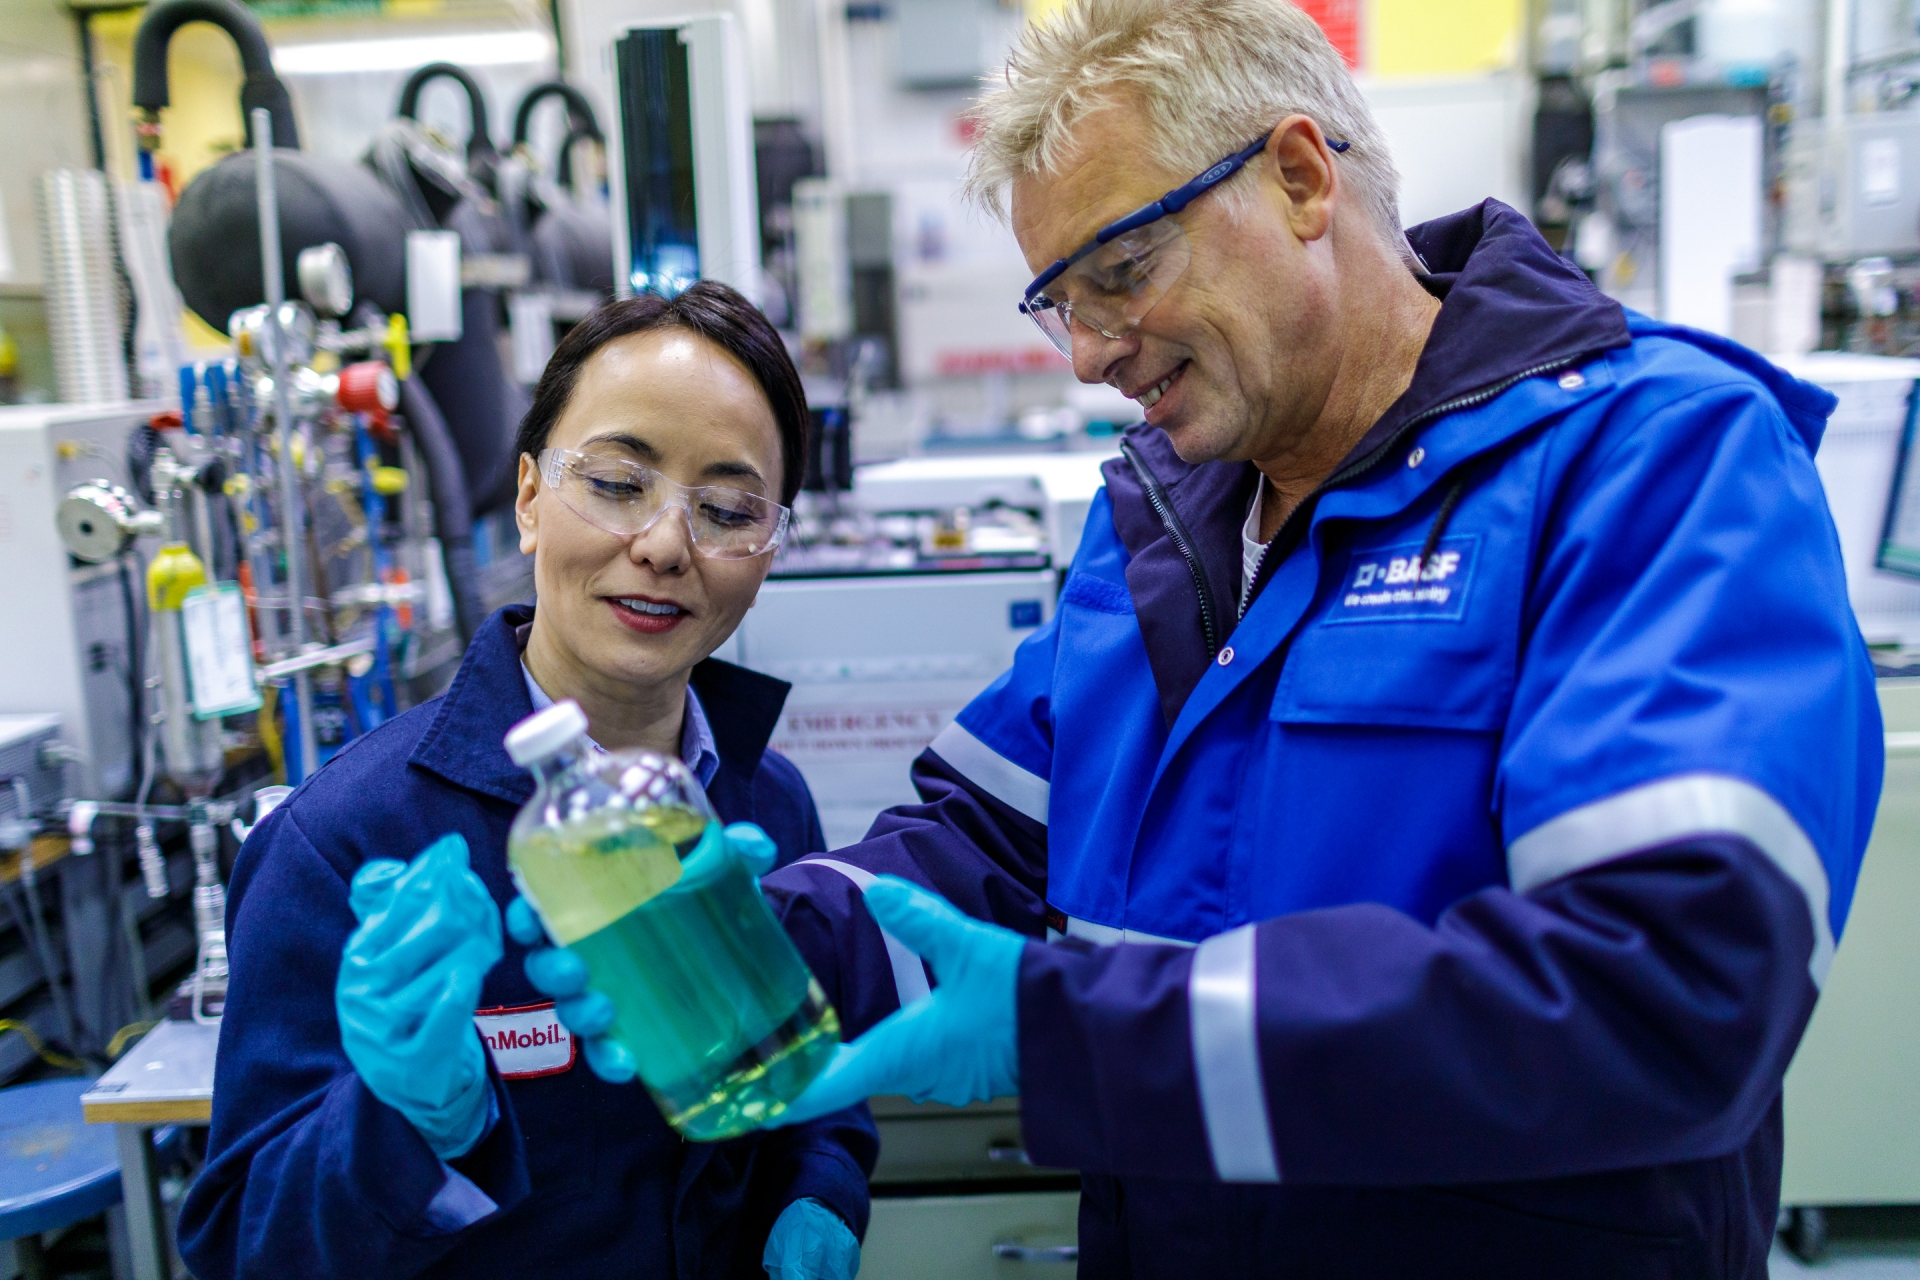 BASF supports search for active ingredients to combat coronavirus